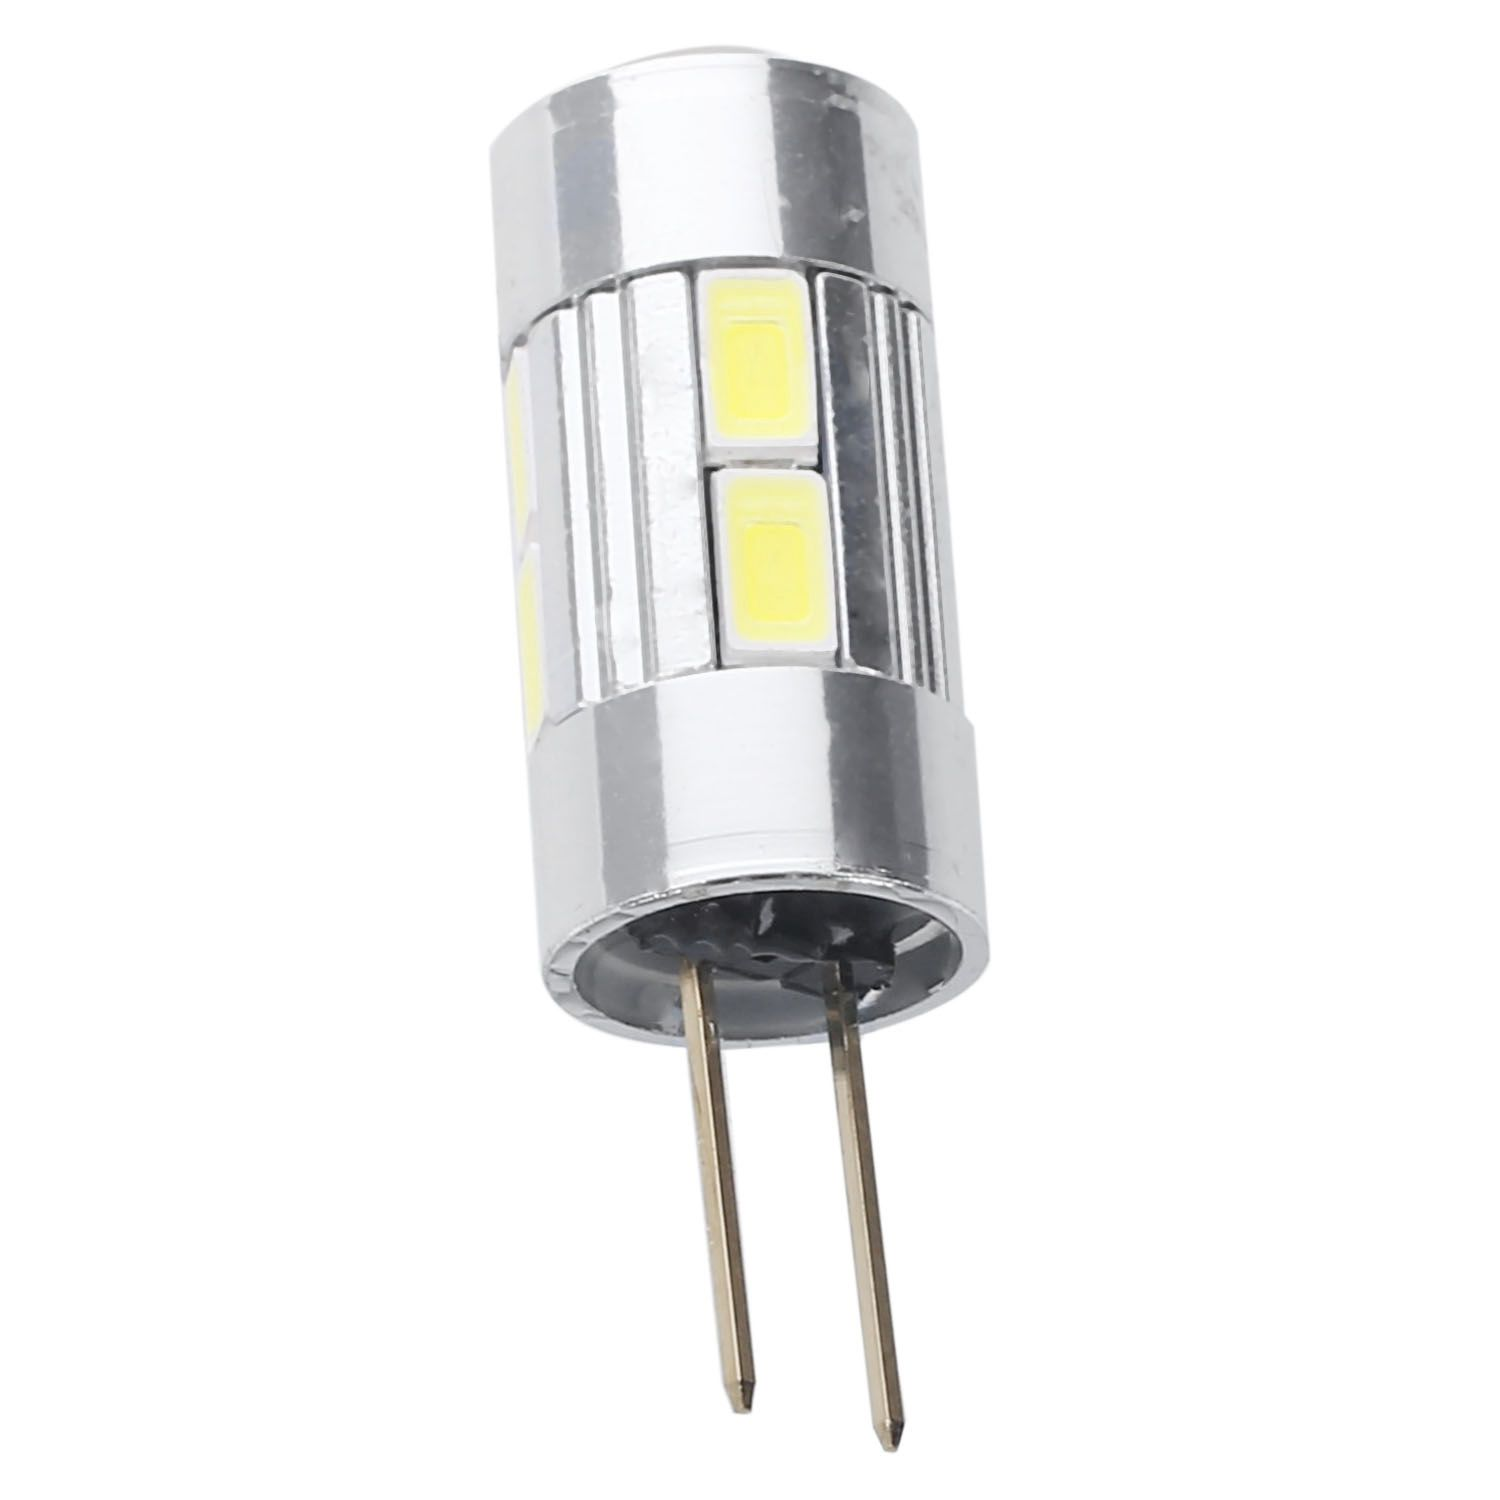 5W <font><b>G4</b></font> Bulbs 10 SMD 5730 480 lm Warm White light DC <font><b>12</b></font> <font><b>V</b></font> image